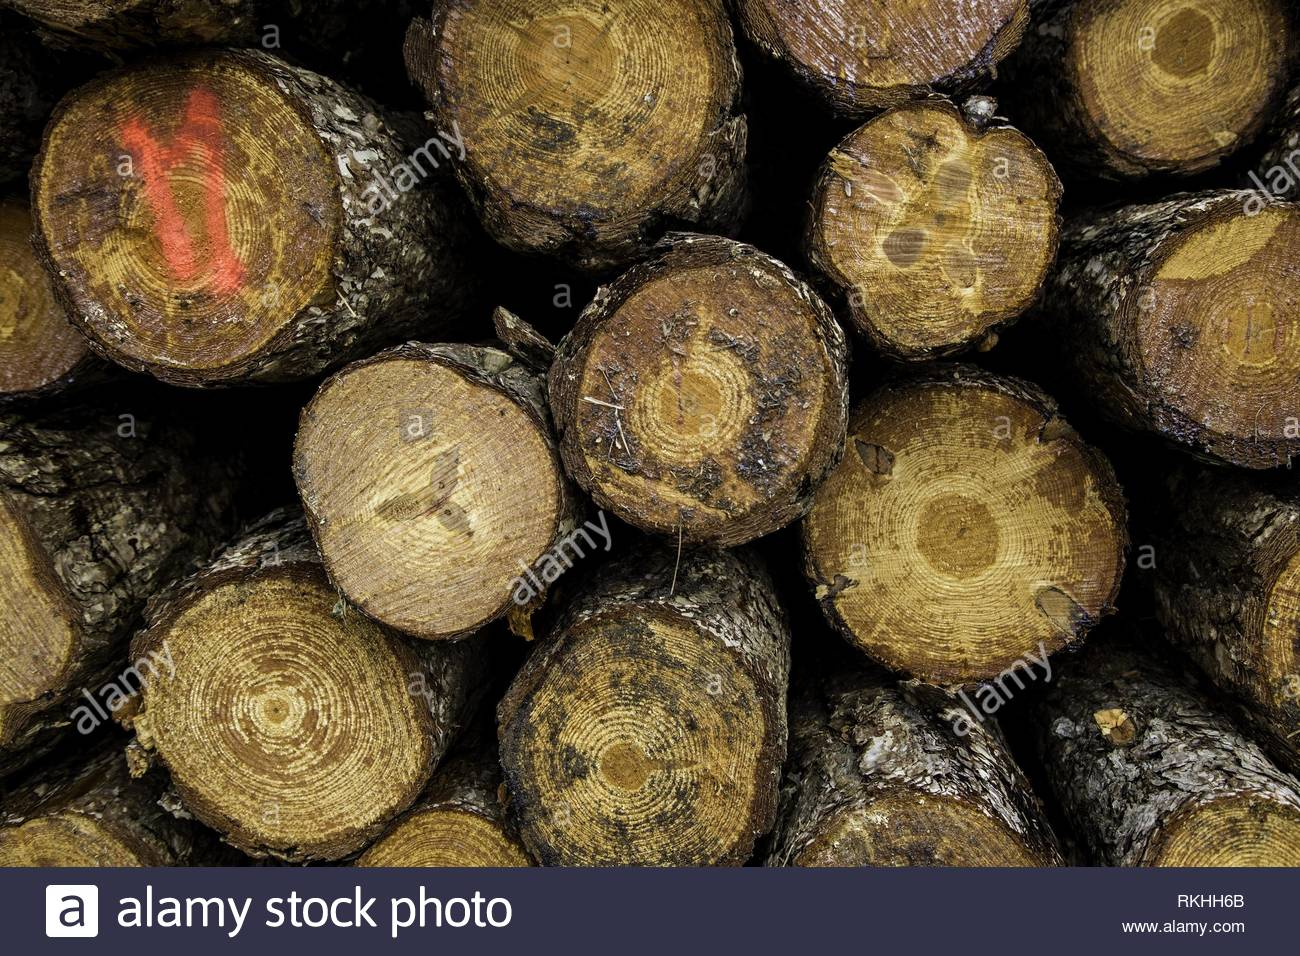 Cut timber trunks, detail of ecological disaster. - Stock Image